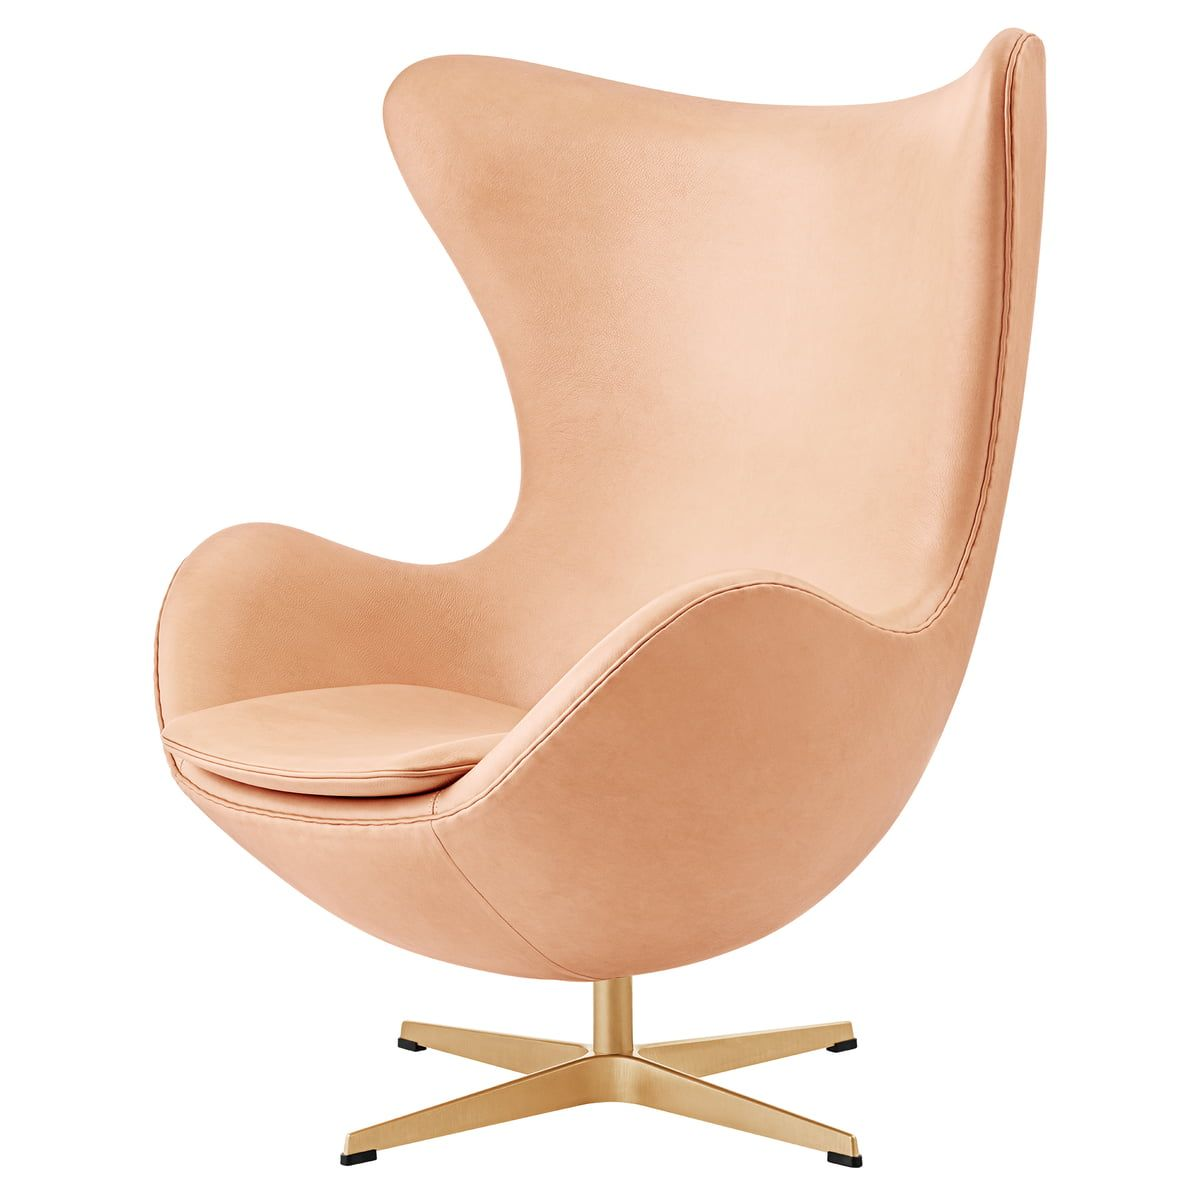 Egg Chair Kaufen Egg Lounge Sessel Orange Egg Chair Kaufen Ei Sessel Online Leder